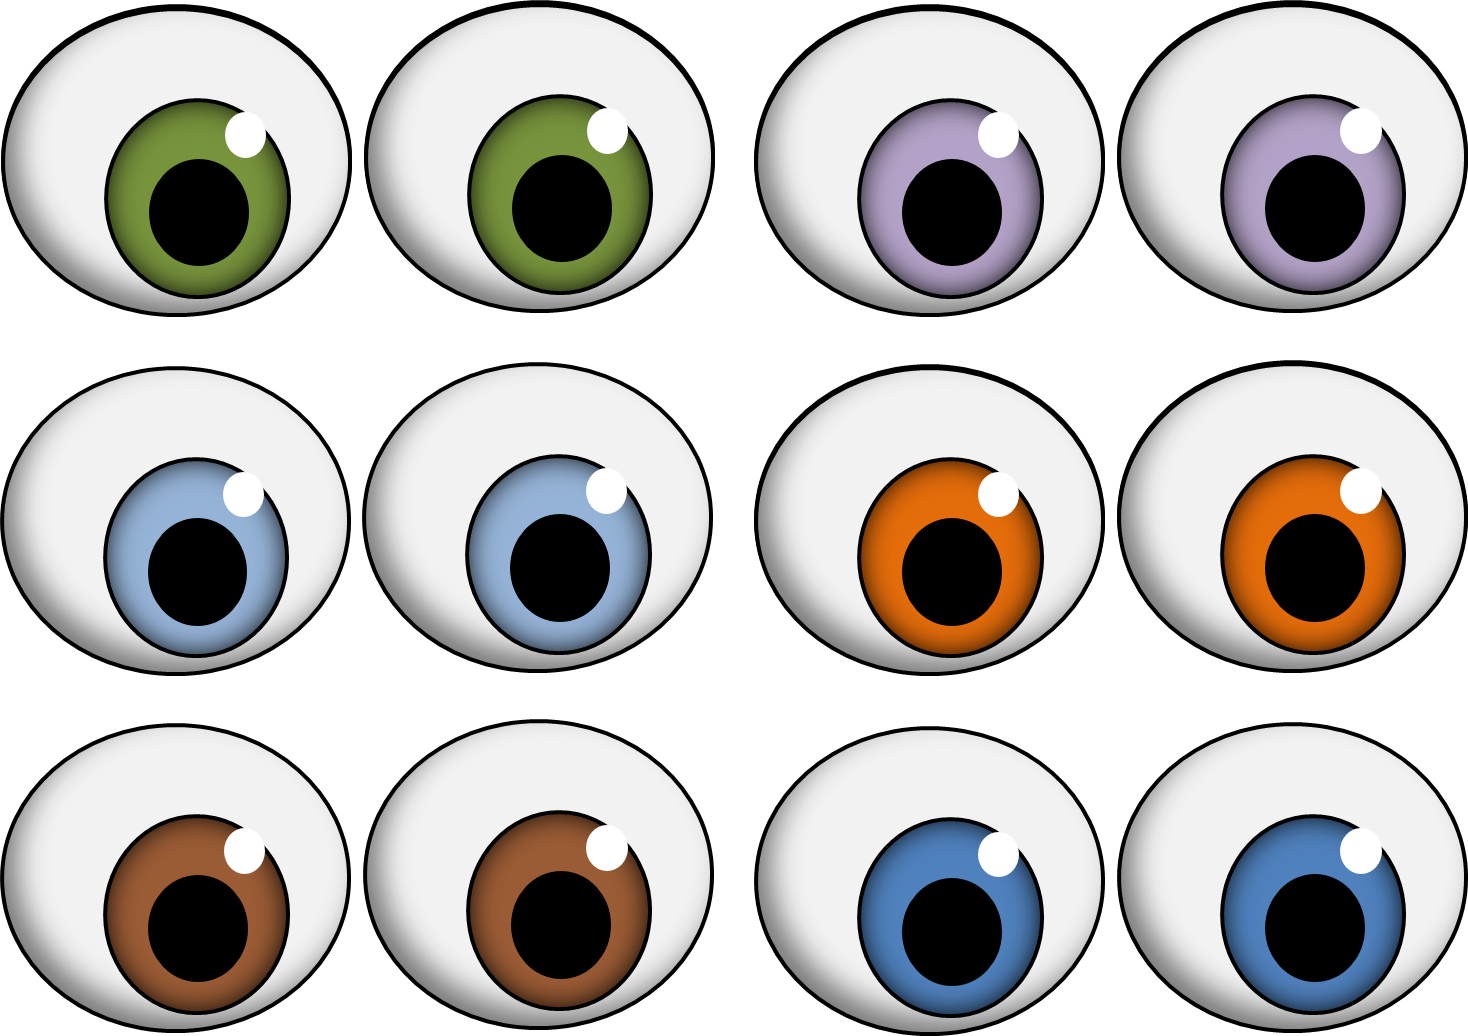 33 Googly Eyes Clip Art Free Cliparts Th-33 Googly Eyes Clip Art Free Cliparts That You Can Download To You-0